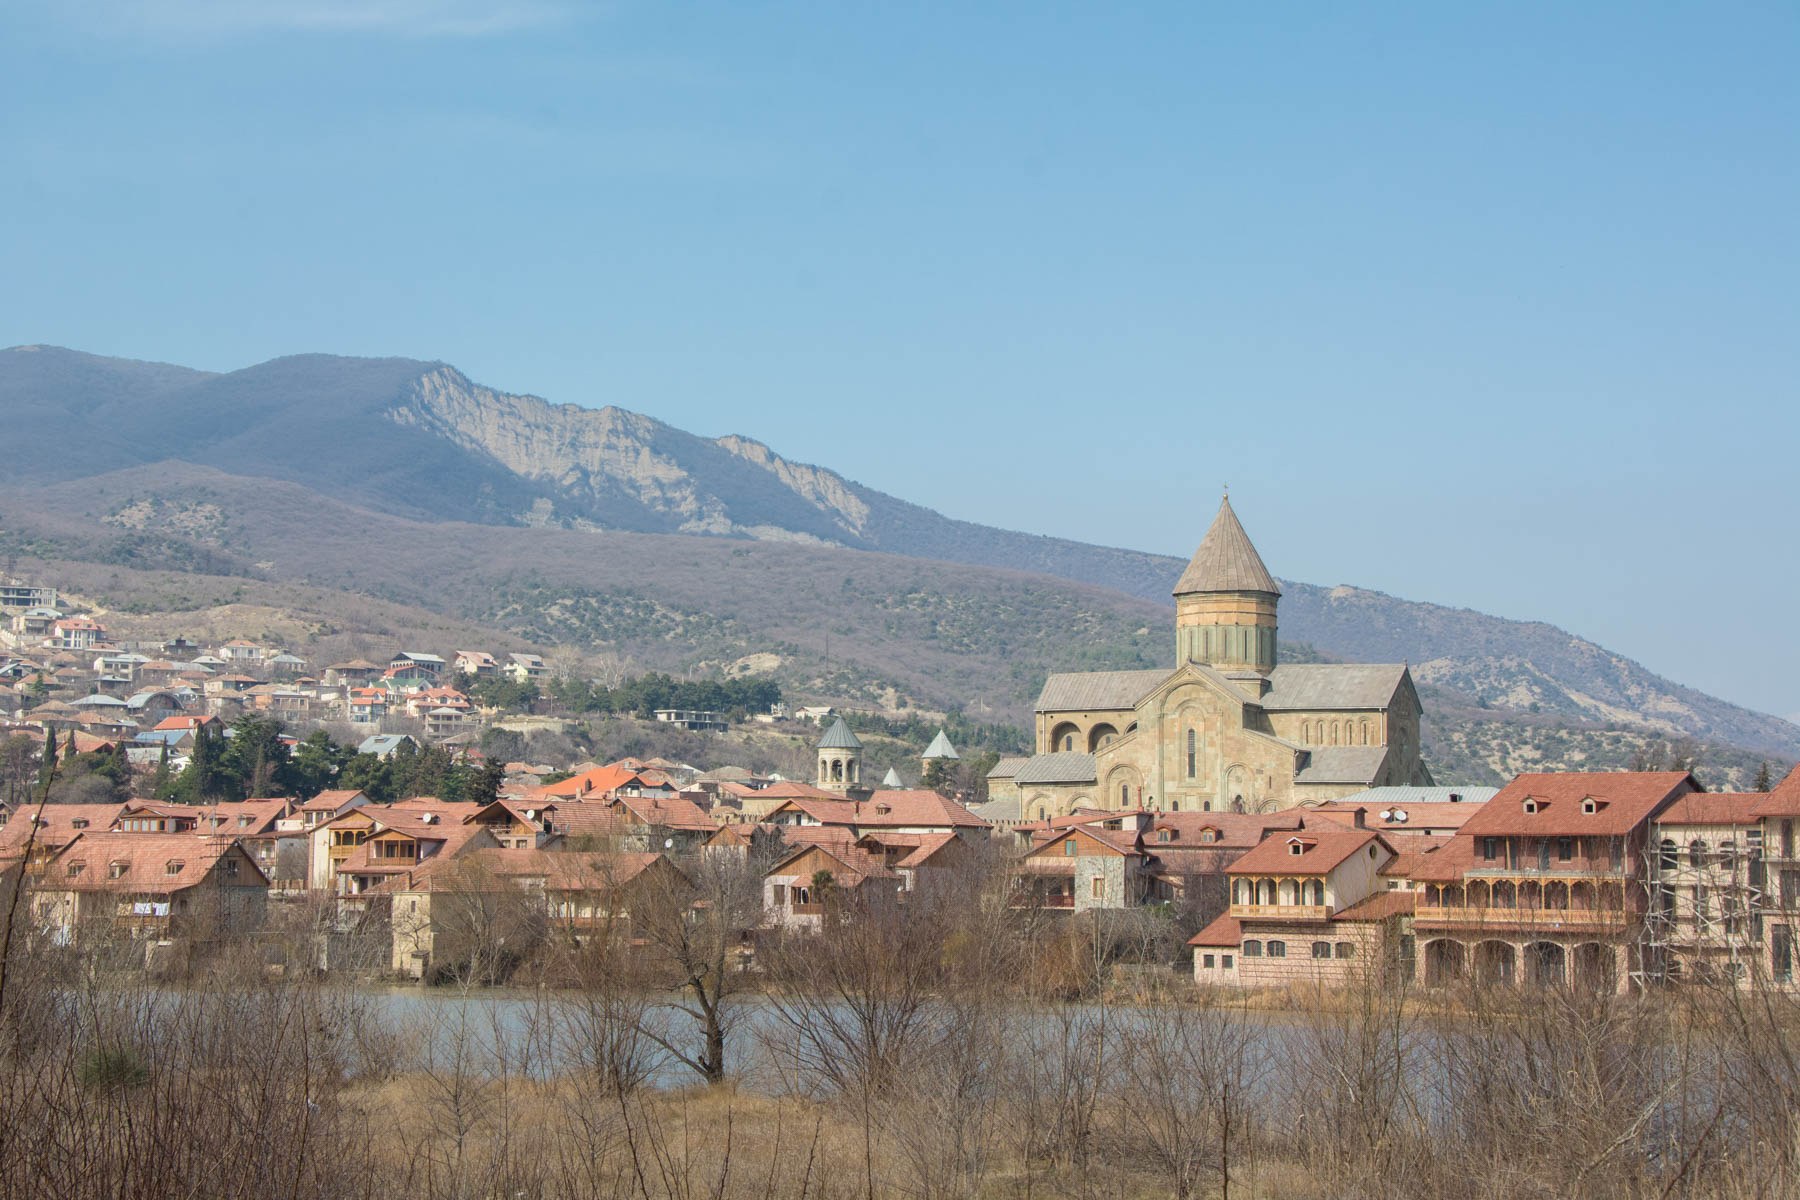 Mtskheta, the birthplace of Christianity in Georgia